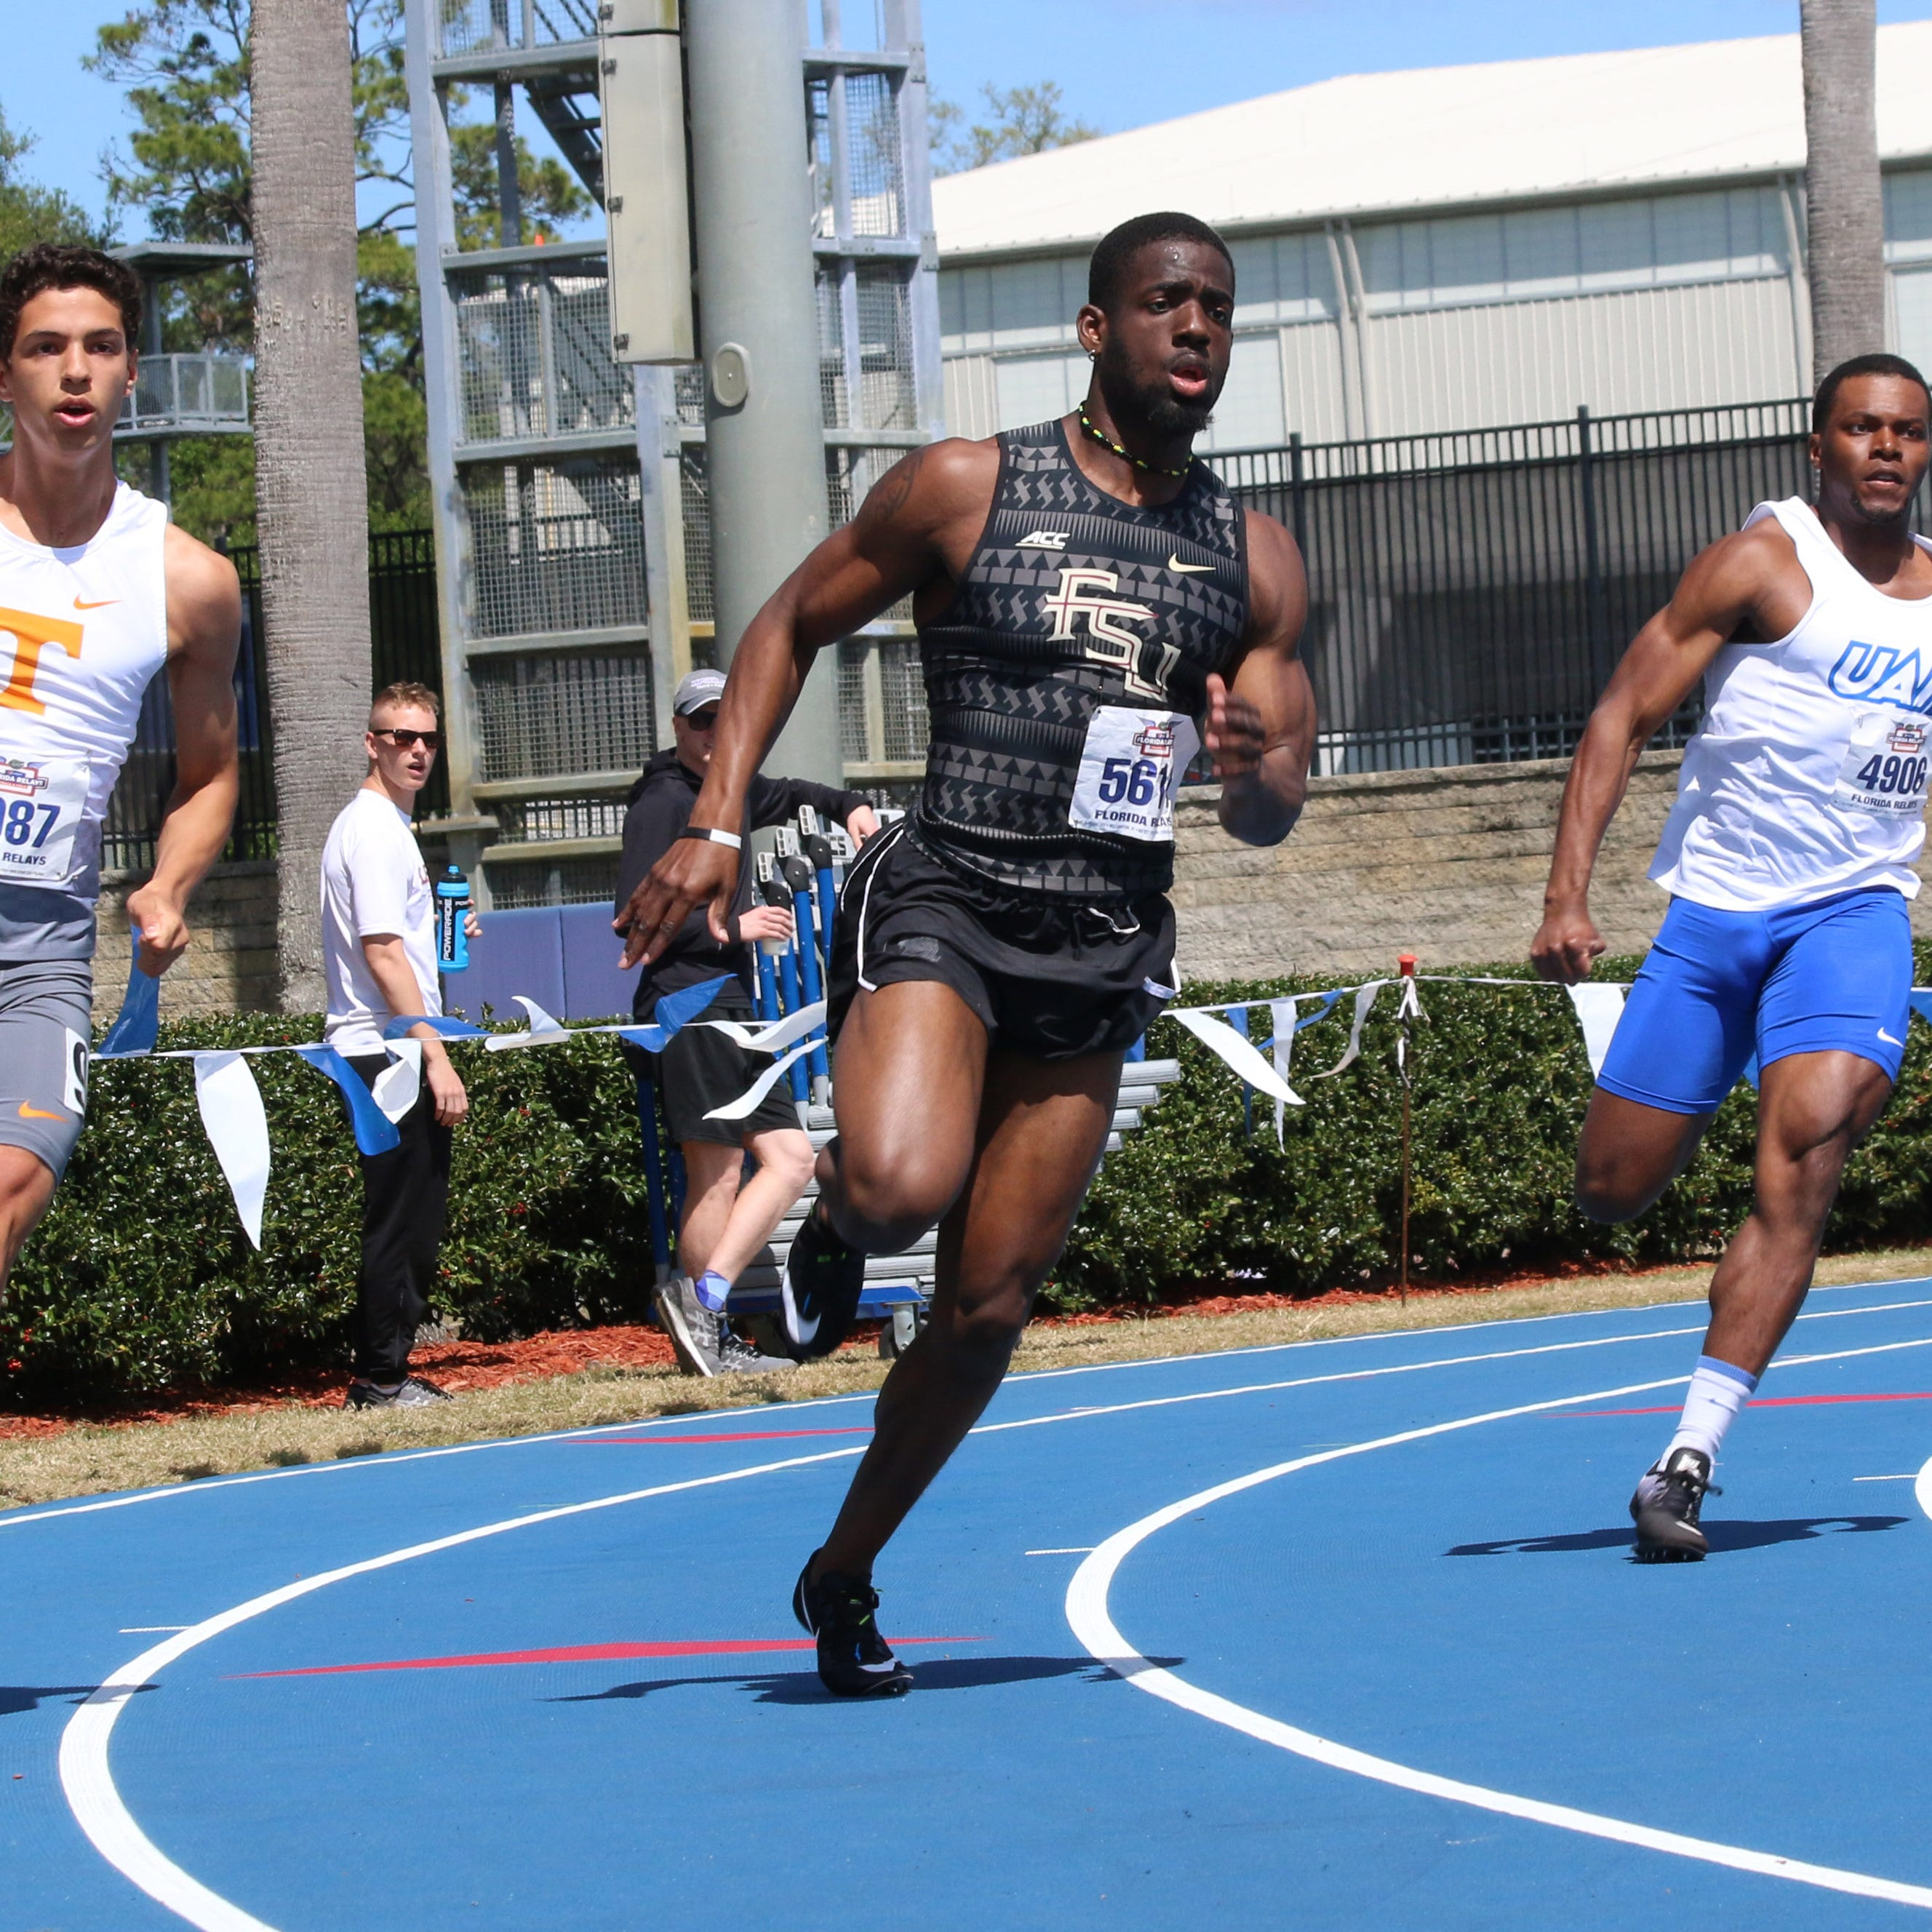 Florida State sprinter Andre Ewers runs for history in title defense at ACC Championships